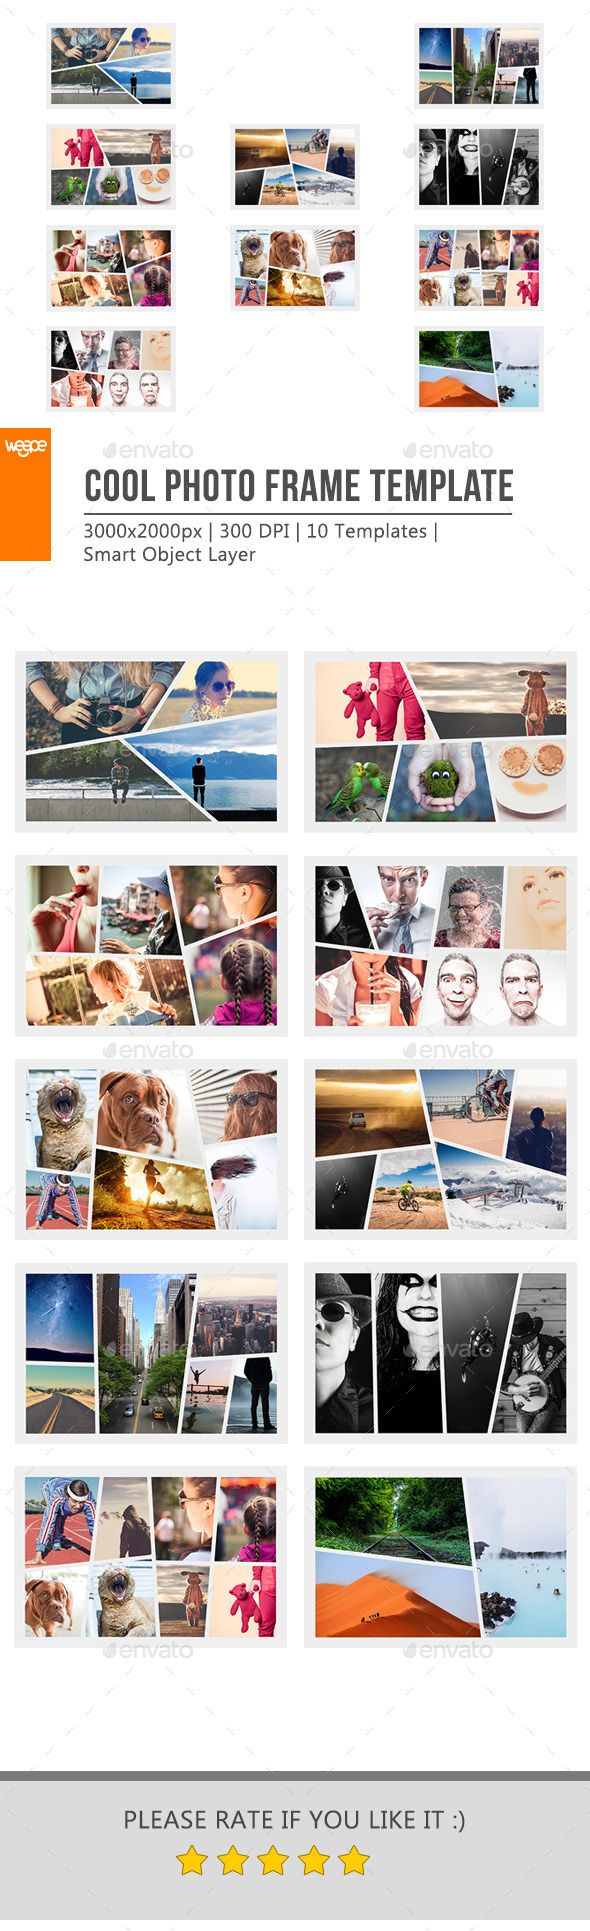 Cool Photo Frame  -  PSD Template • Download ➝ https://graphicriver.net/item/cool-photo-frame-template/11740579?ref=pxcr